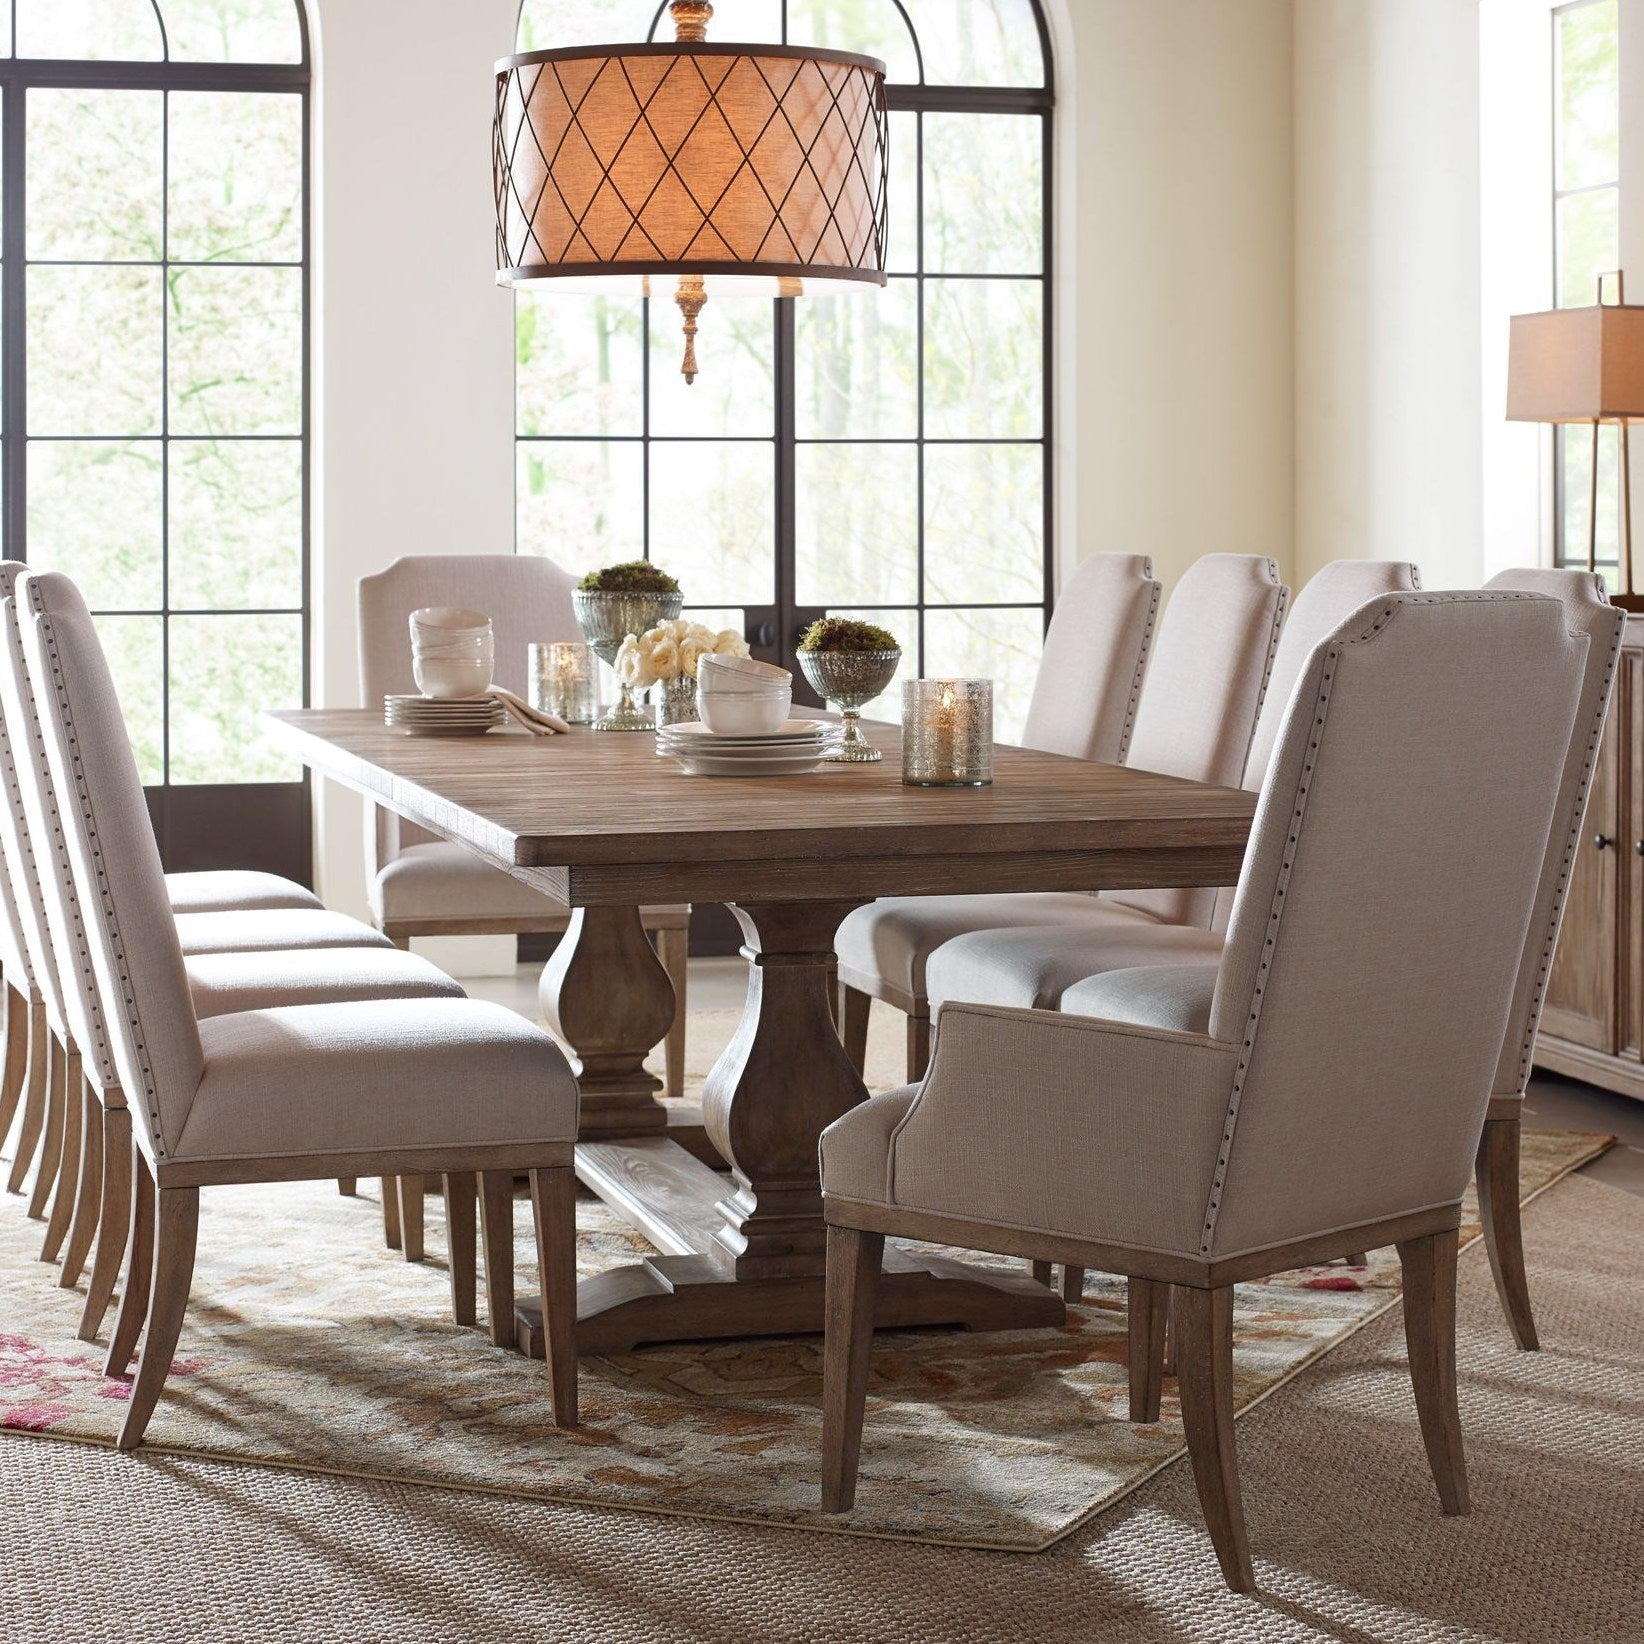 Monte Extendable Trestle Dining Table in Sun-Bleached Cypress